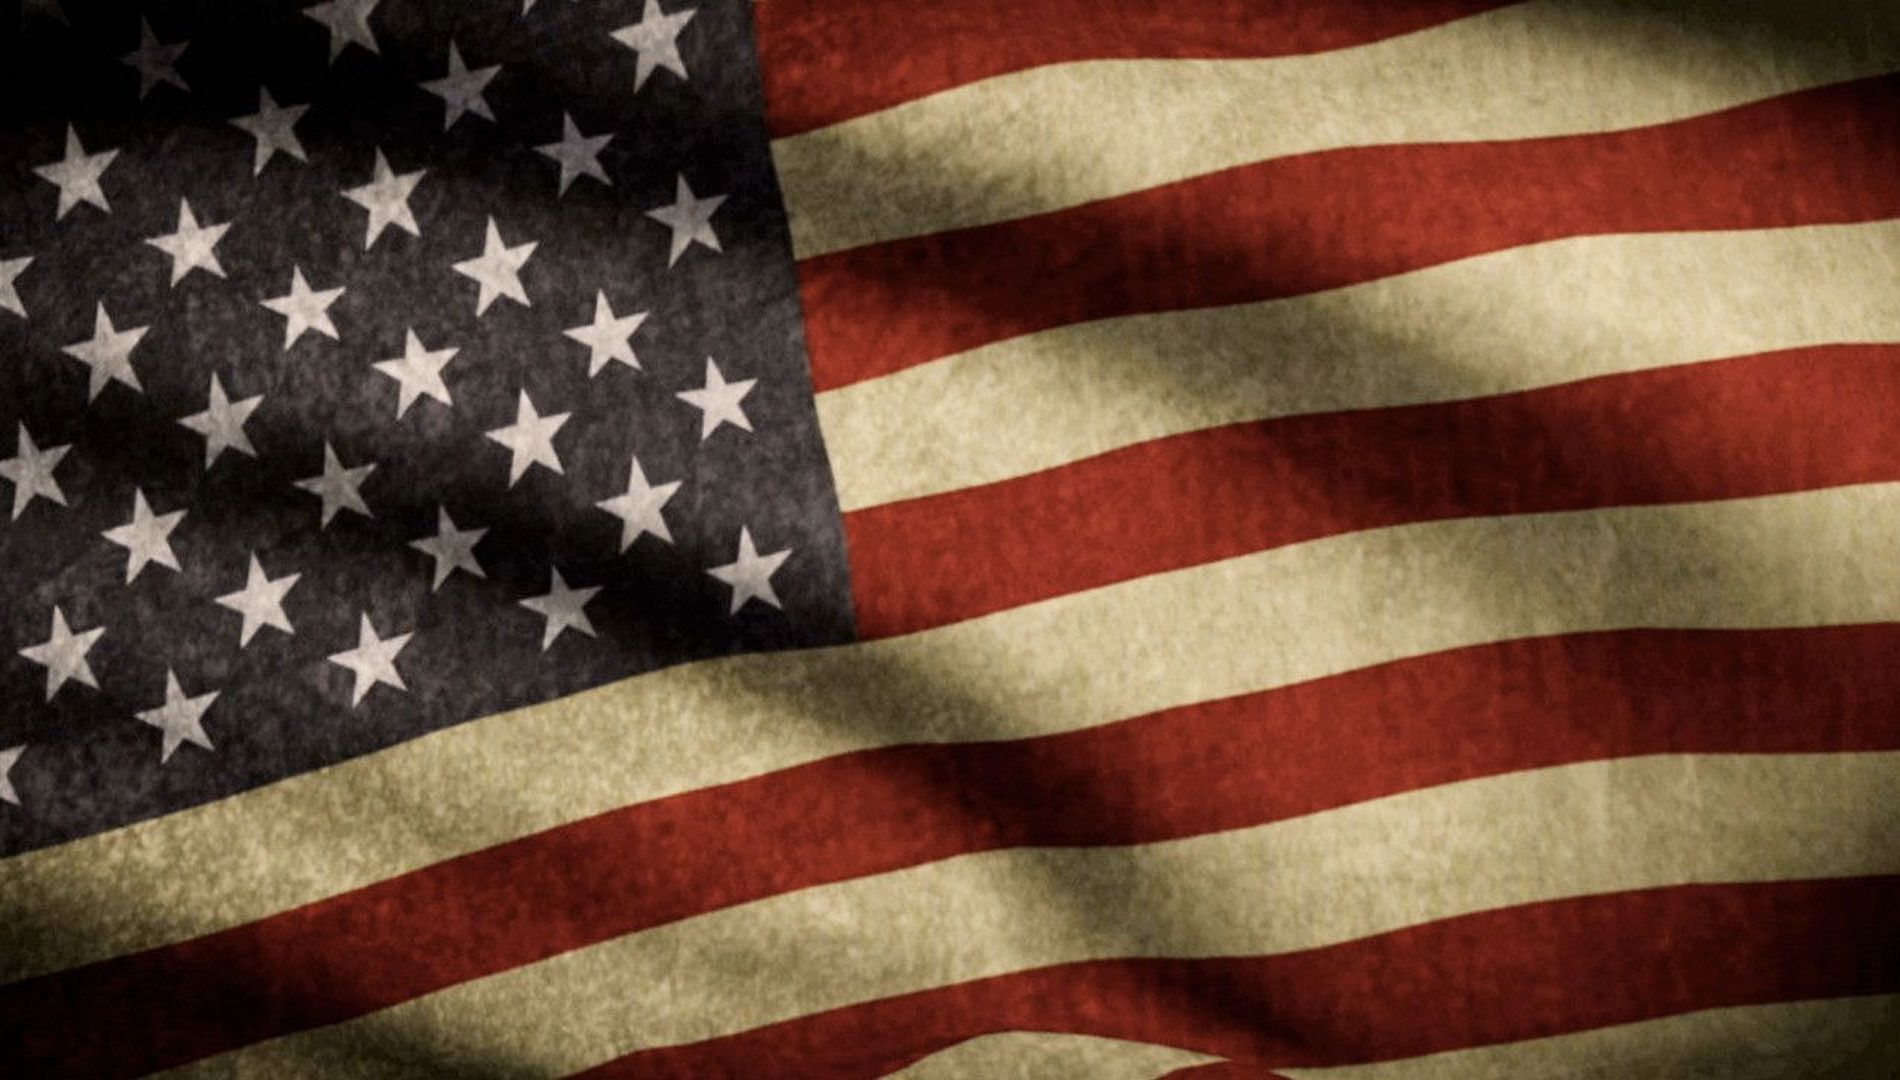 American Flag Wallpaper American Flag Background American Flag Images American Flag Wallpaper